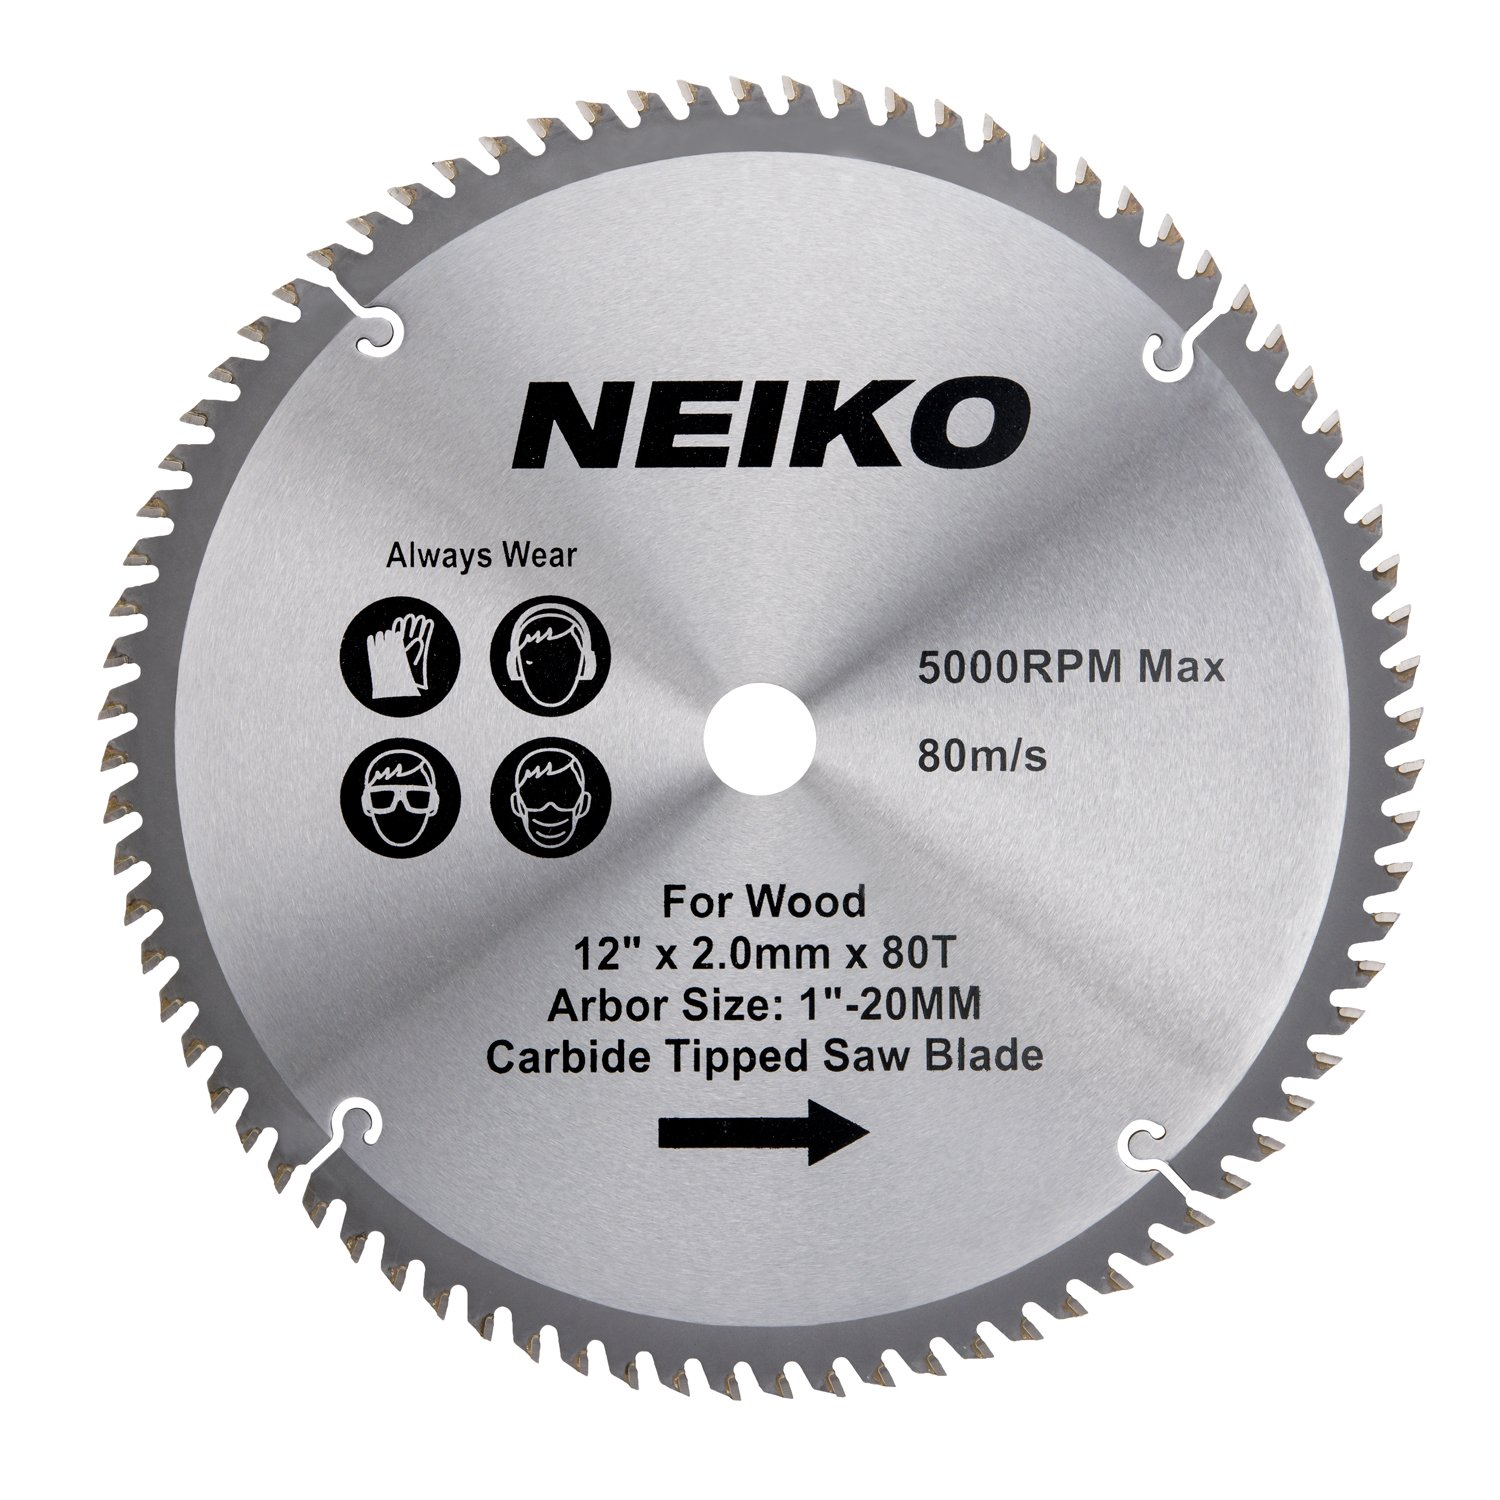 Neiko 10768A 12'' Carbide Tipped Miter Saw Blade | 80 Tooth